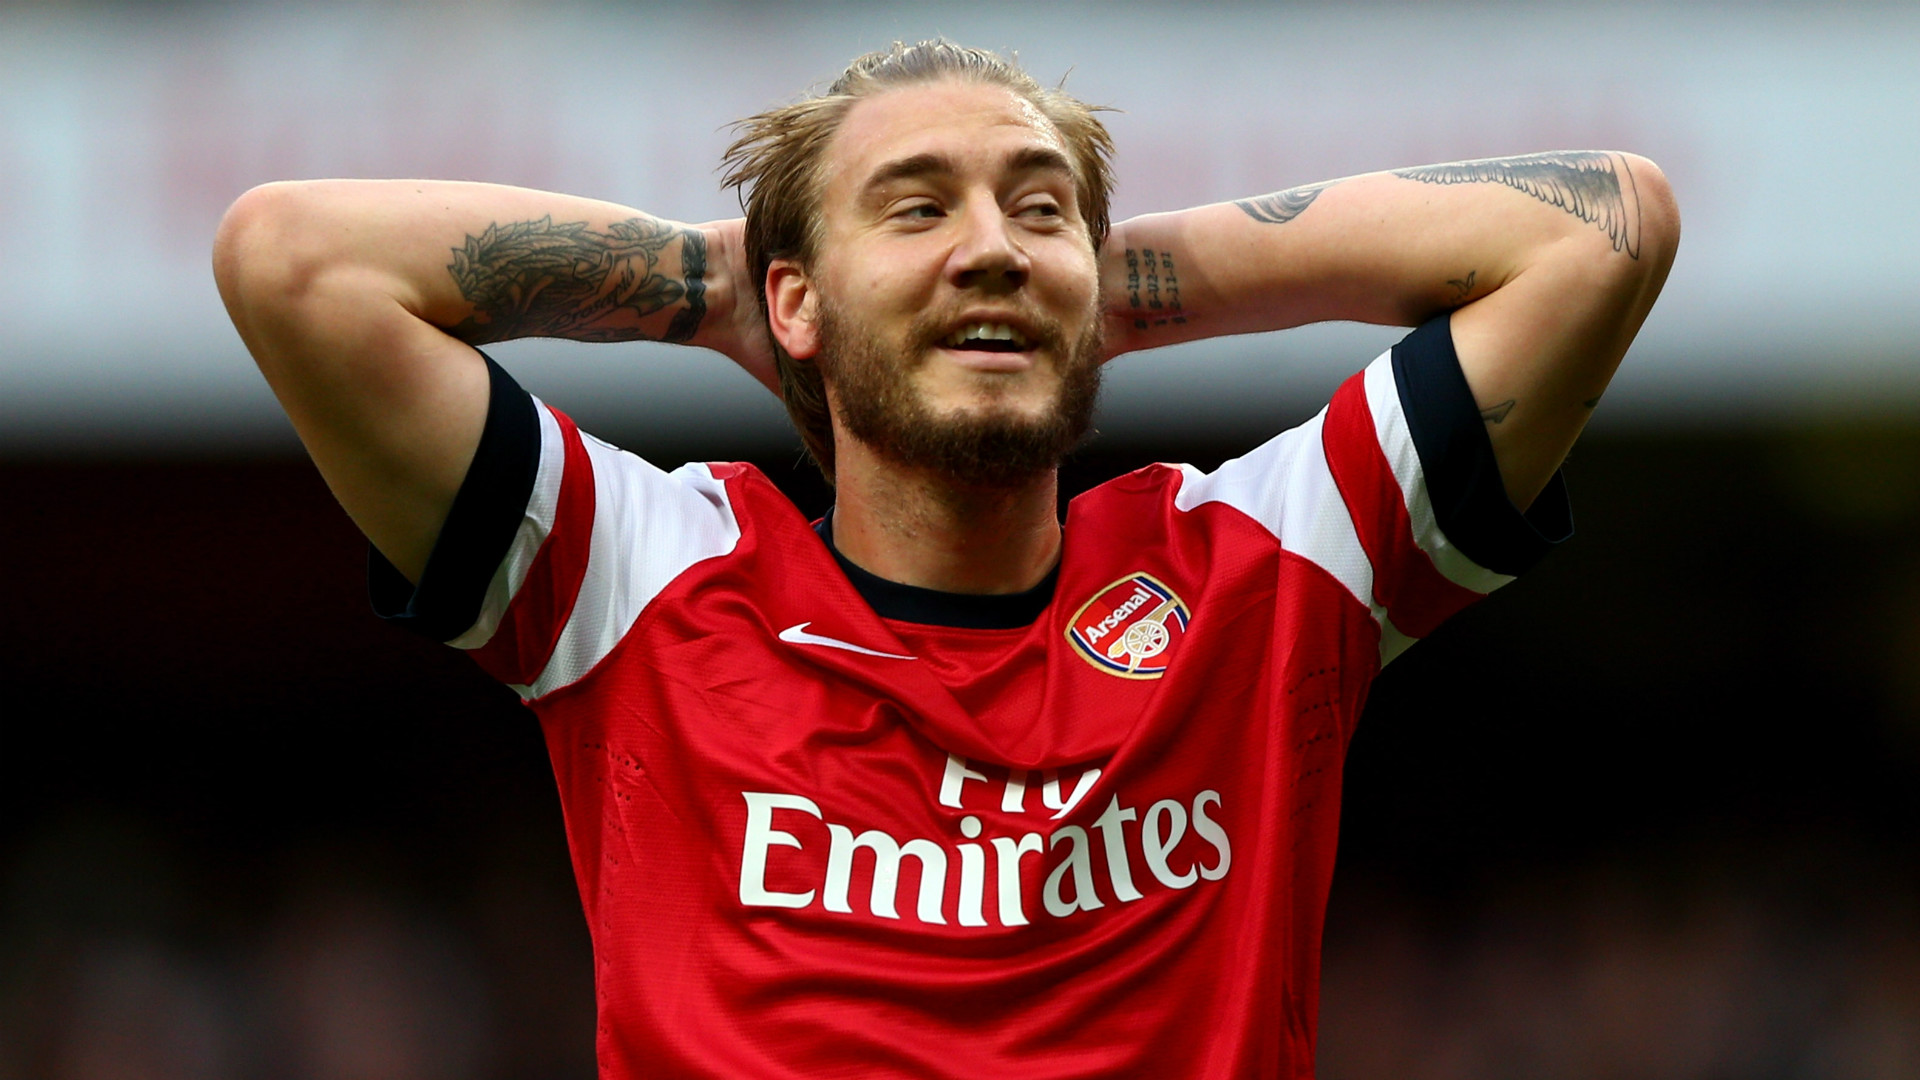 Nicklas Bendtner Arsenal Premier League